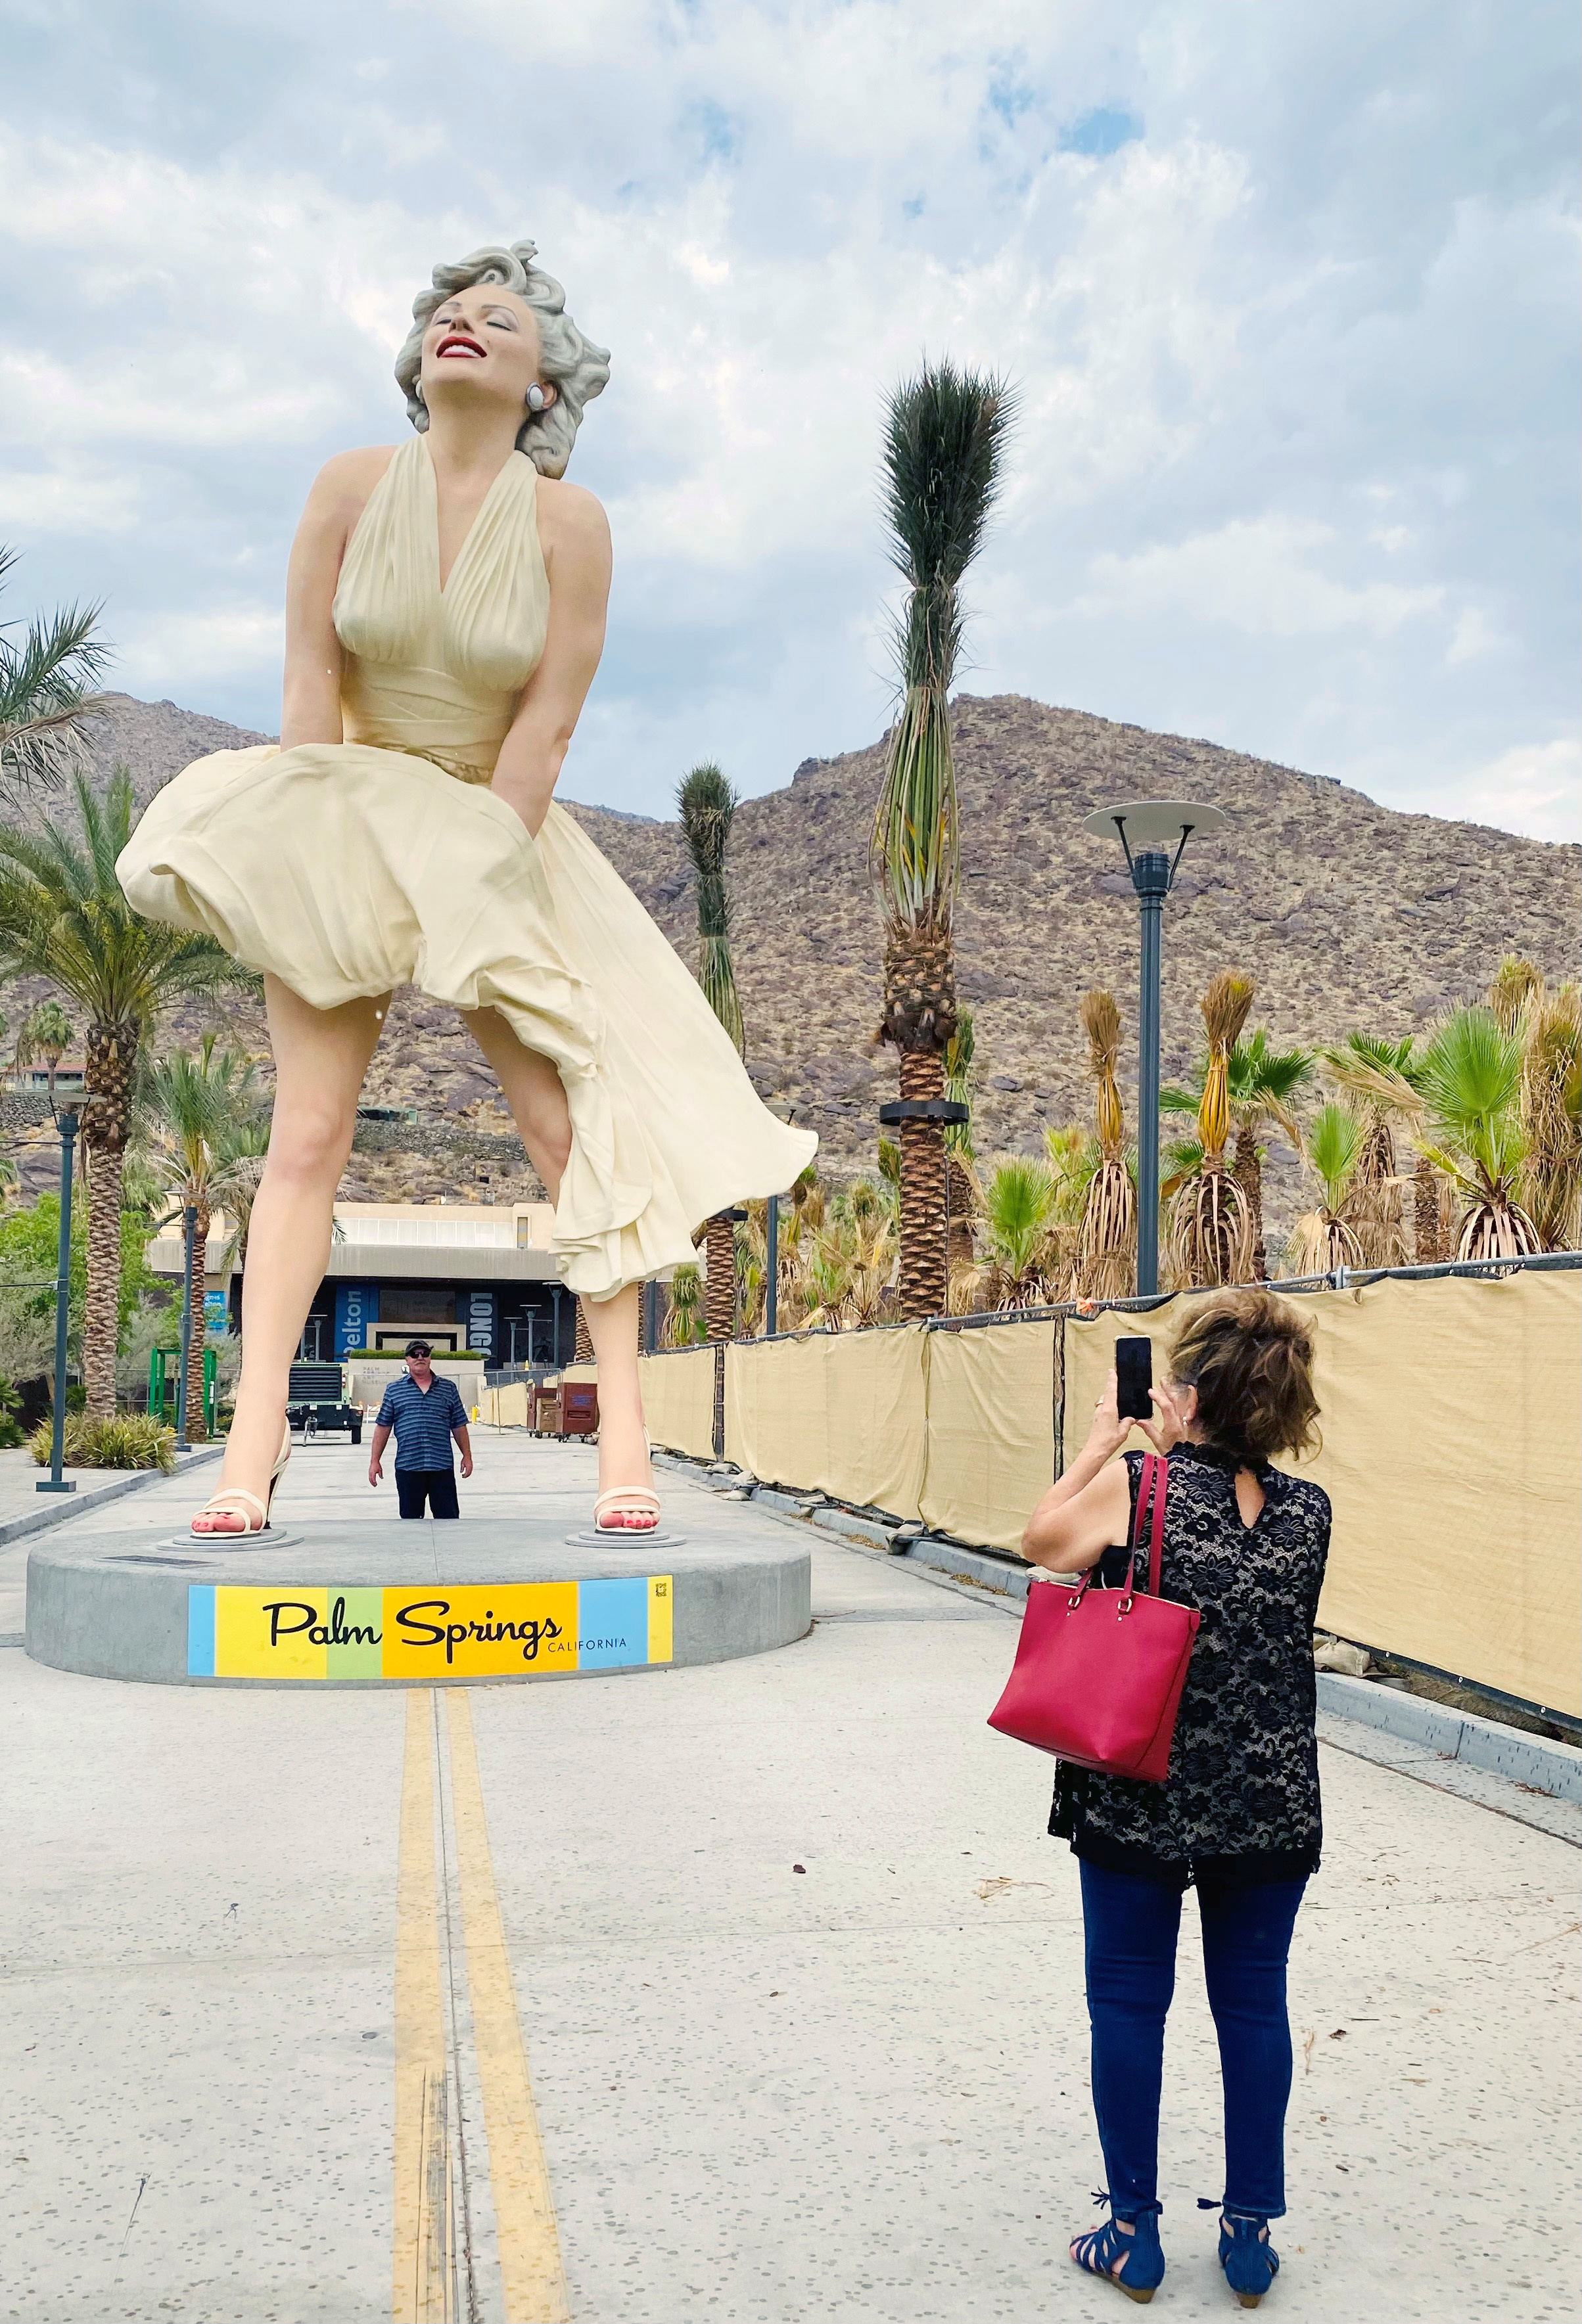 Marilyn Monroe statue returns to Palm Springs, to cheers and jeers ...